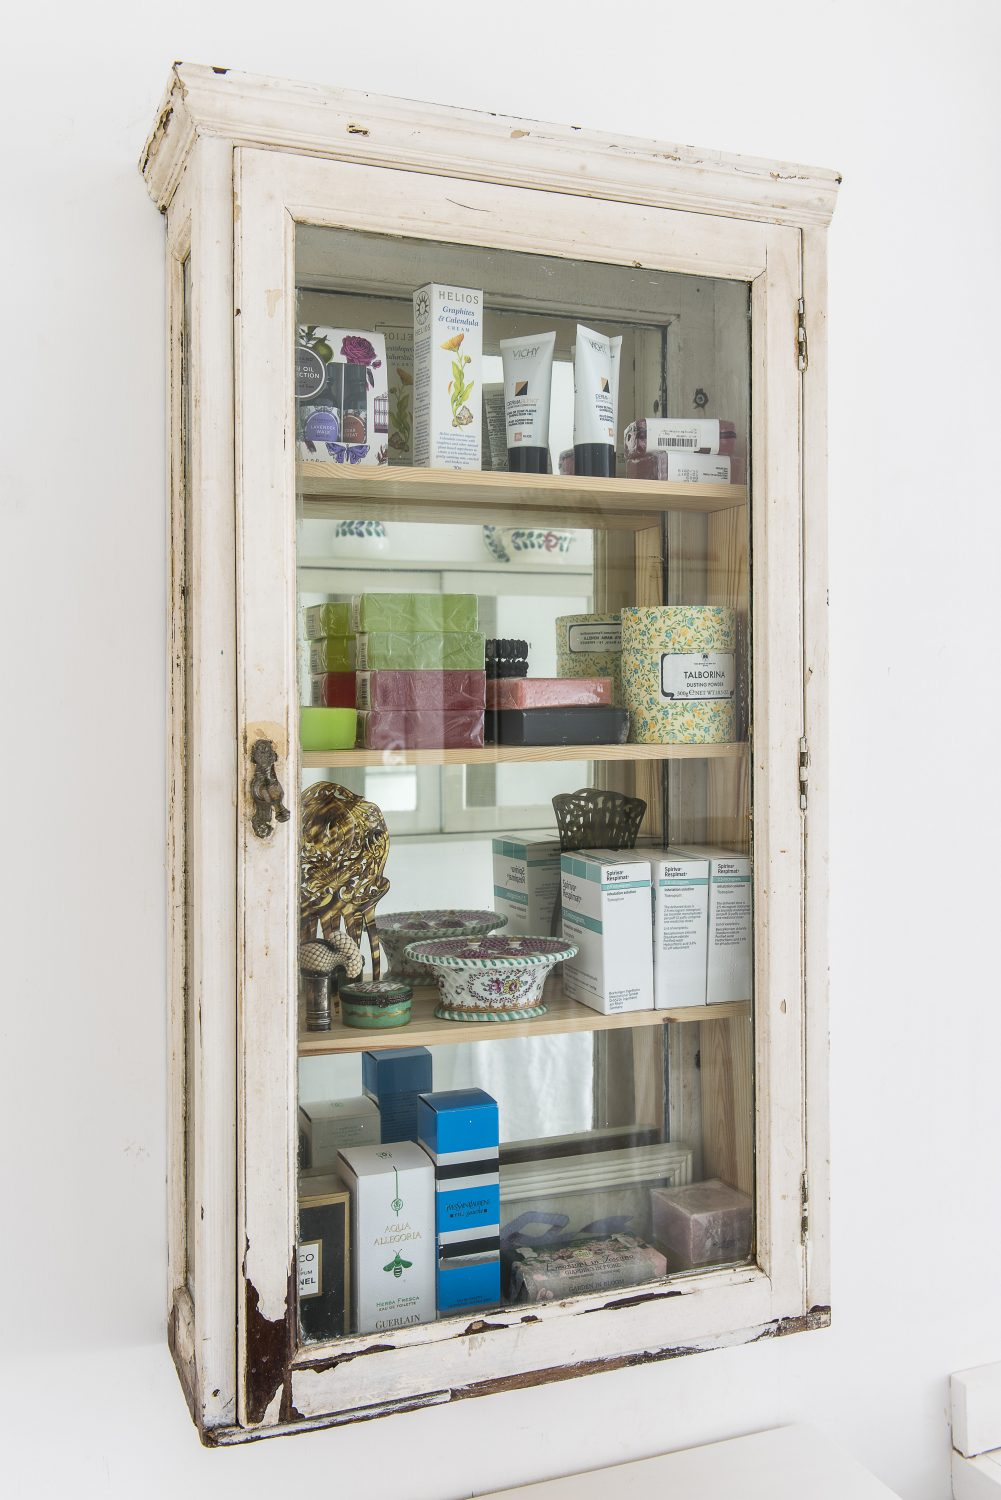 The vintage bathroom cabinet was given to Sasha by her brother, fashion illustrator and designer Gavin Waddell